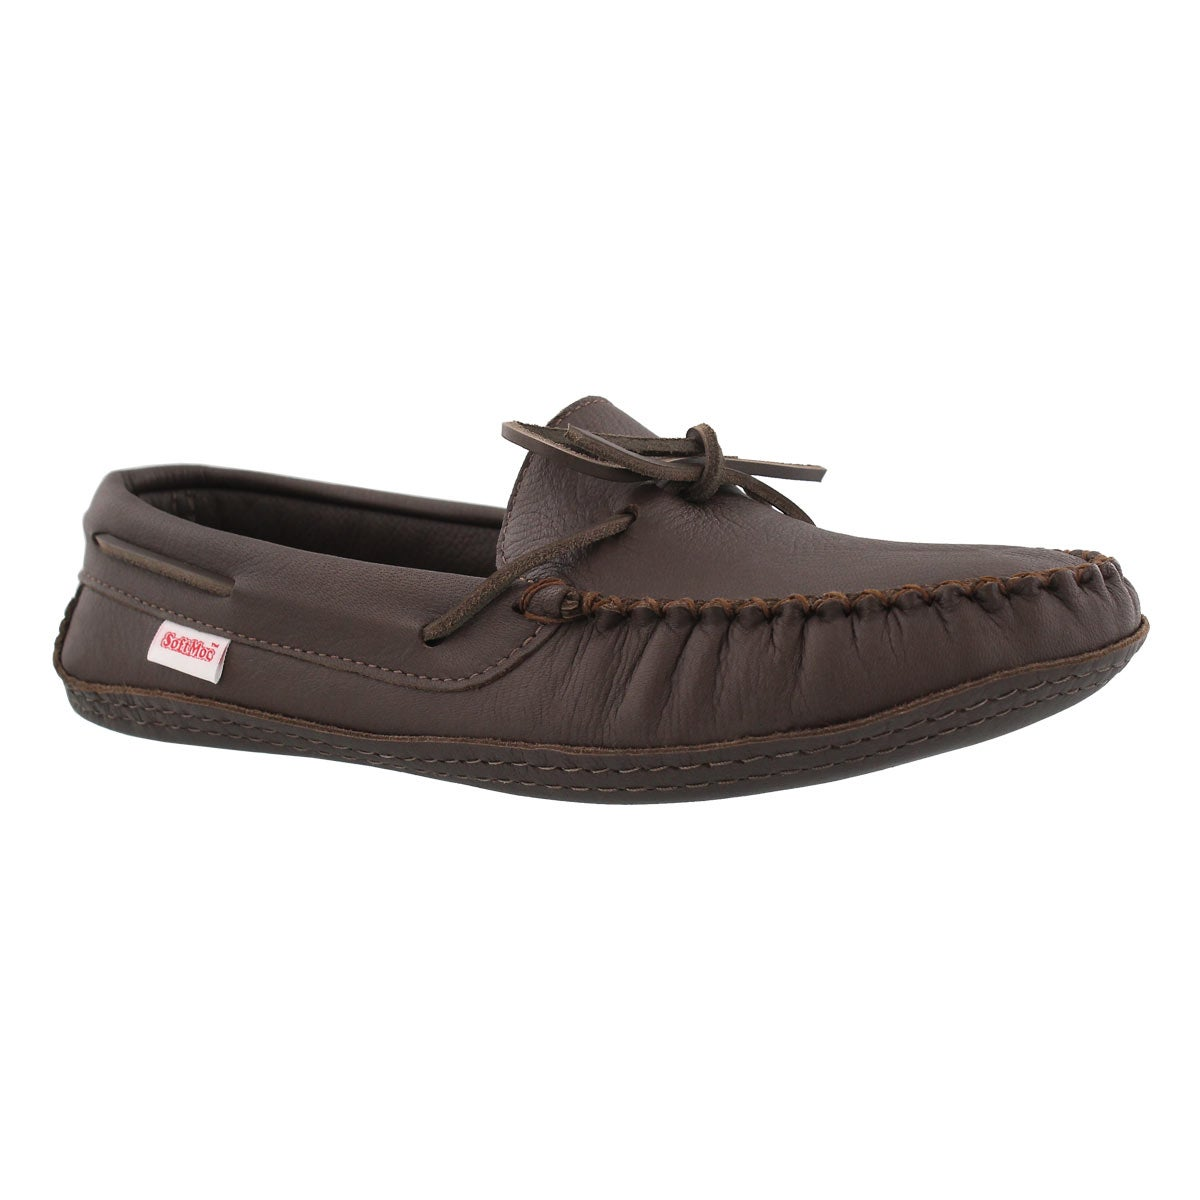 Men's 3000 brown leather moccasins